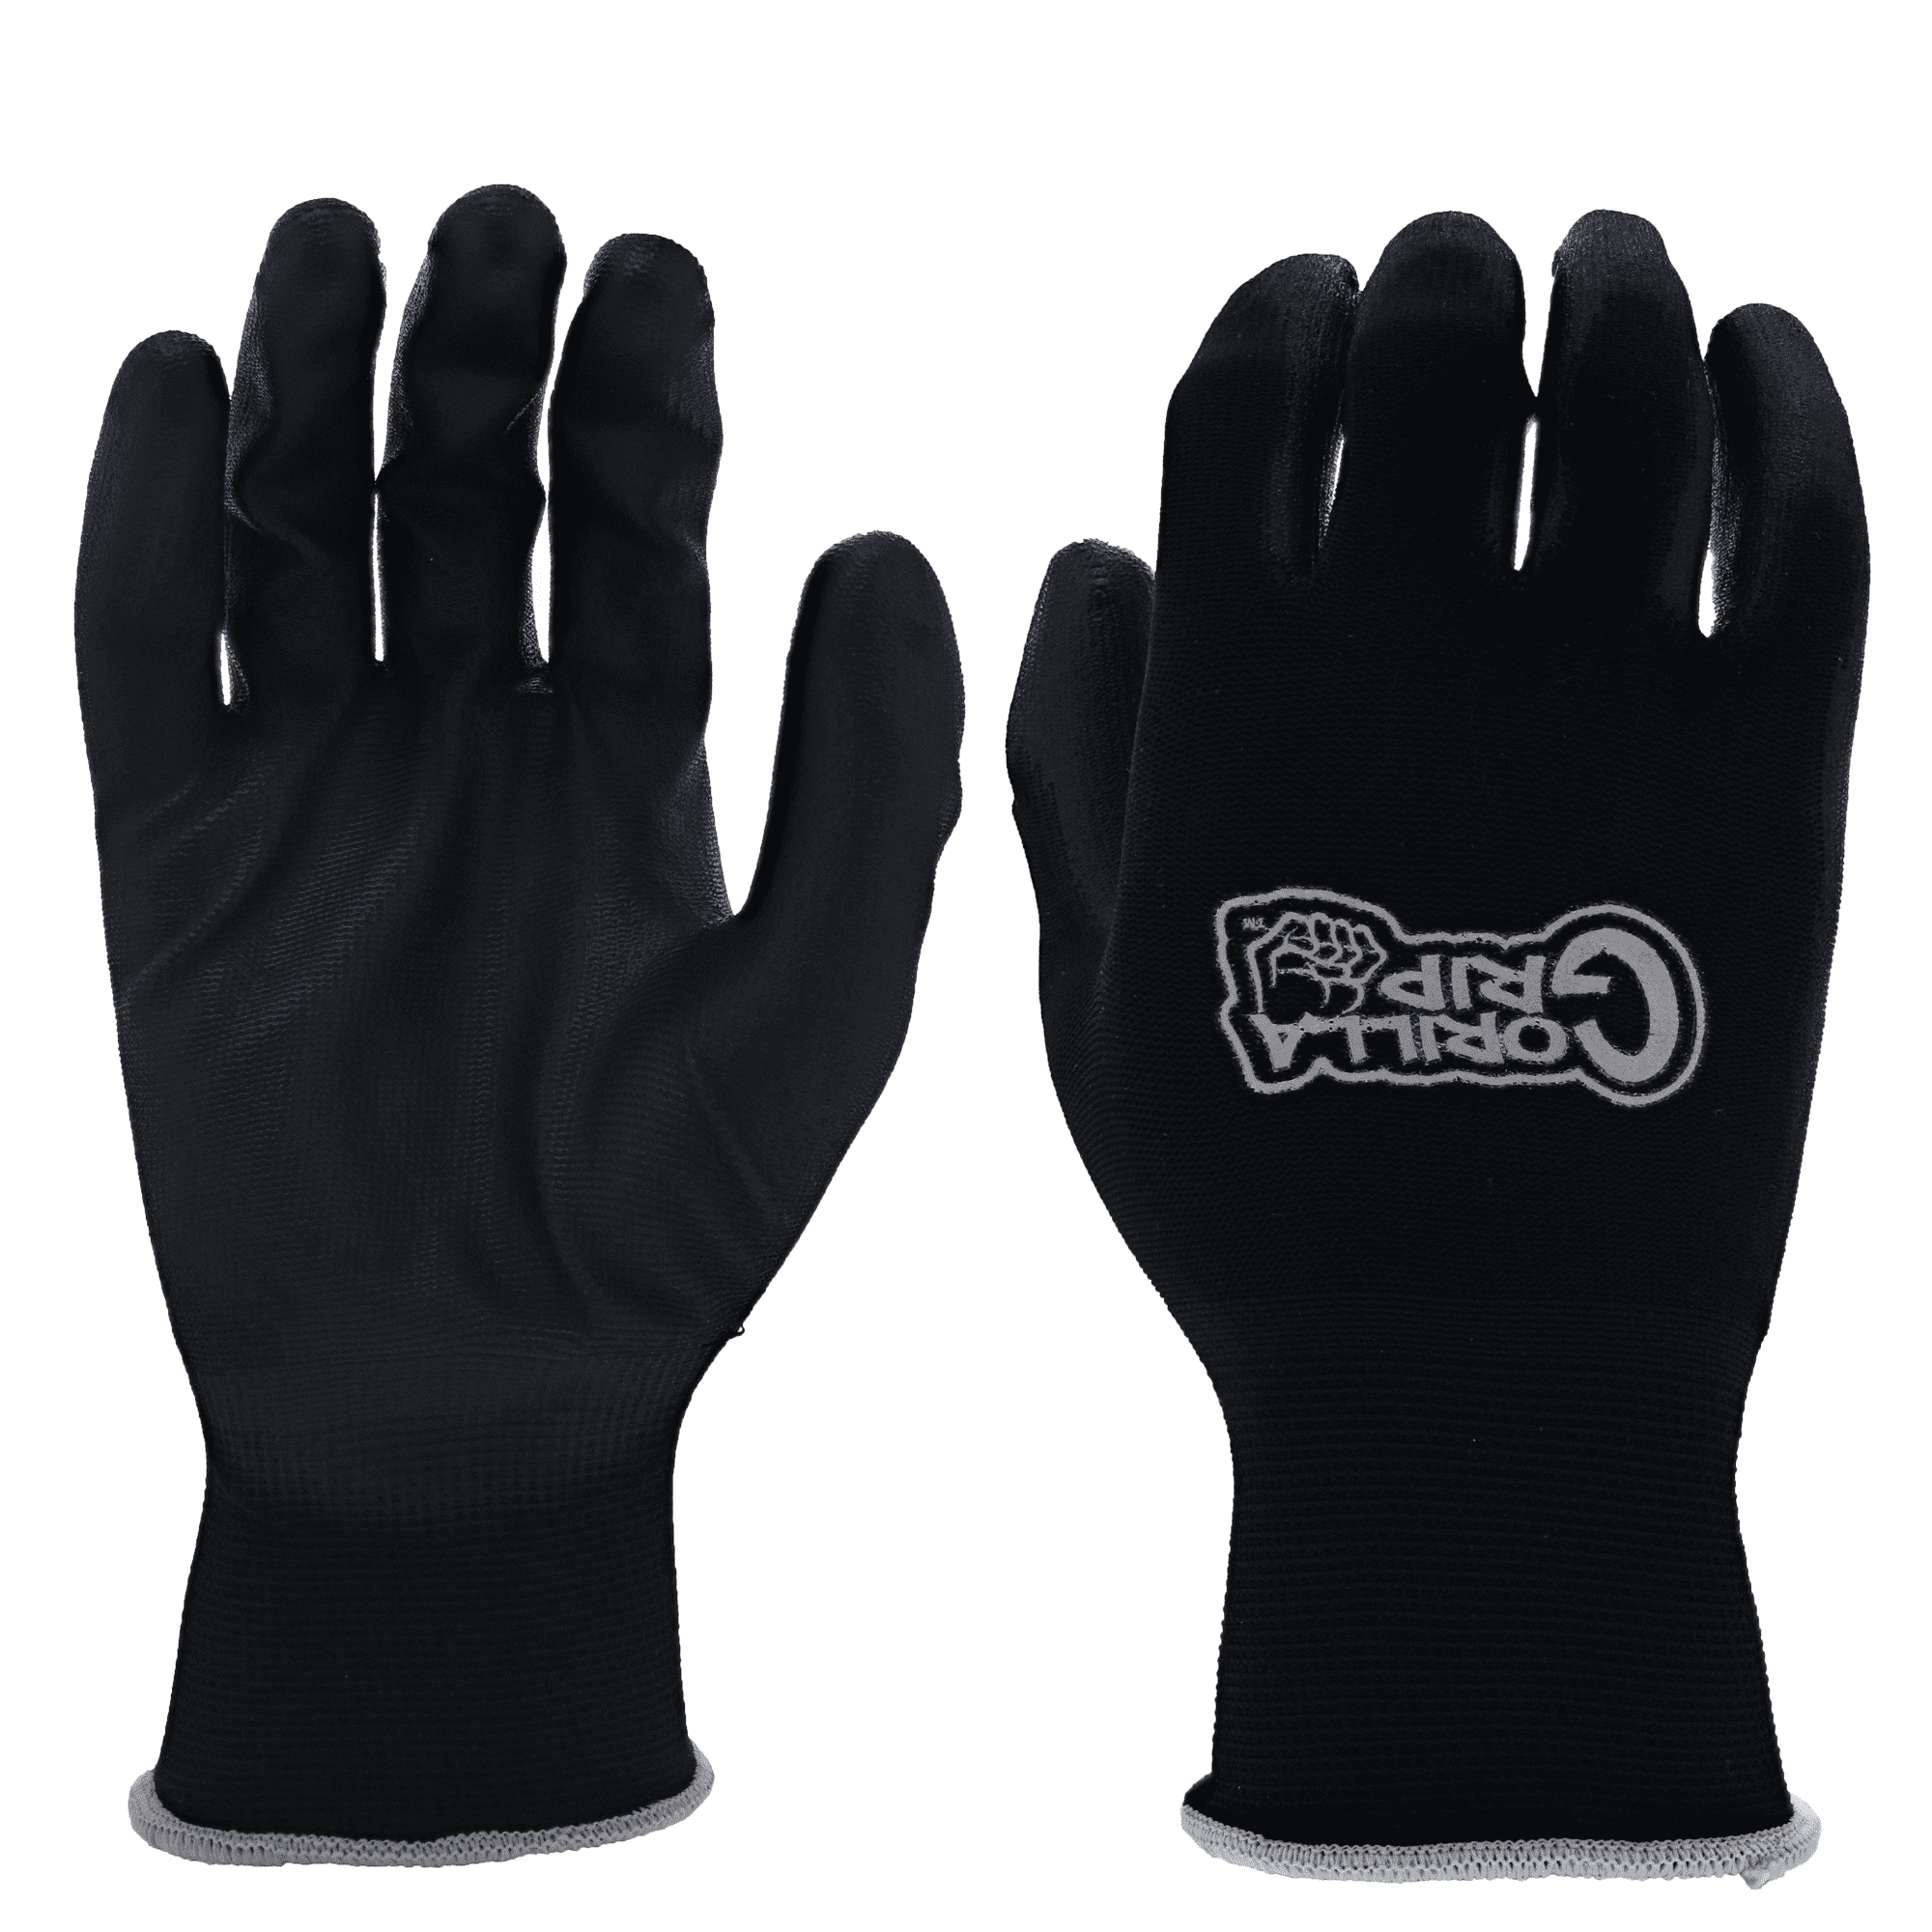 Grease Monkey Gorilla Grip No Slip Gloves, X-Large, 25054-08